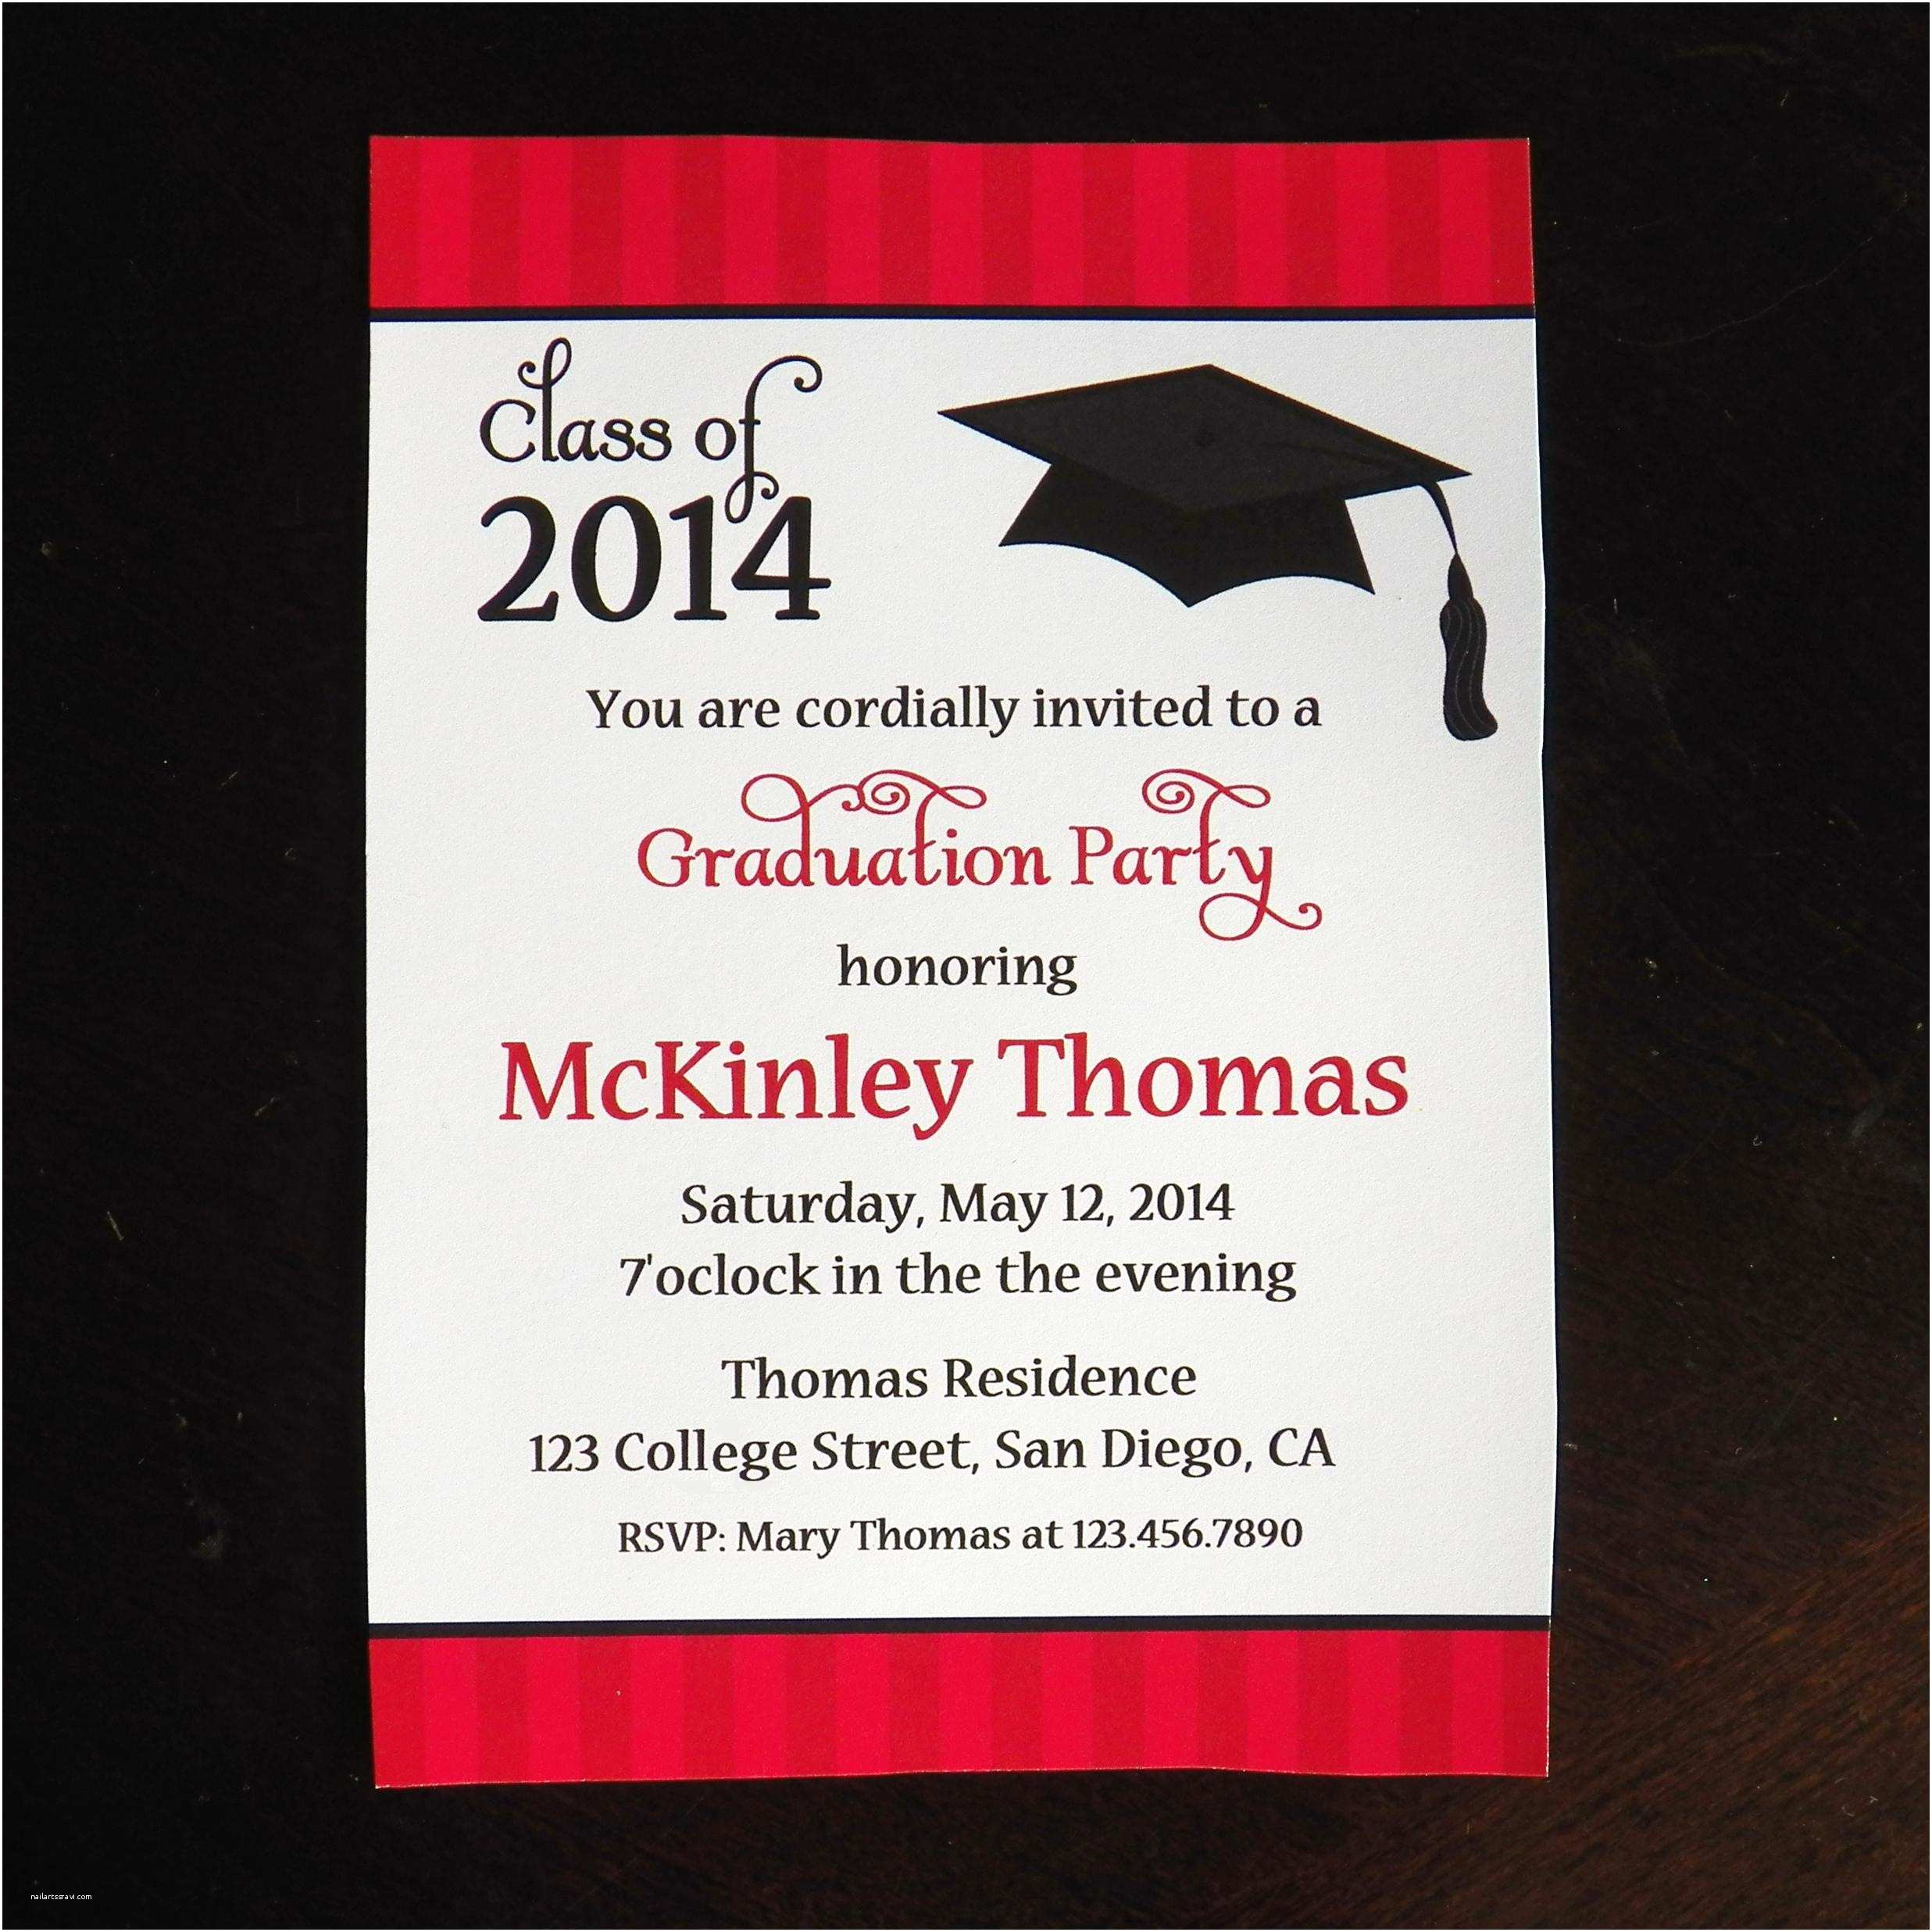 Sample Graduation Party Invitation College Graduation Party Invitations